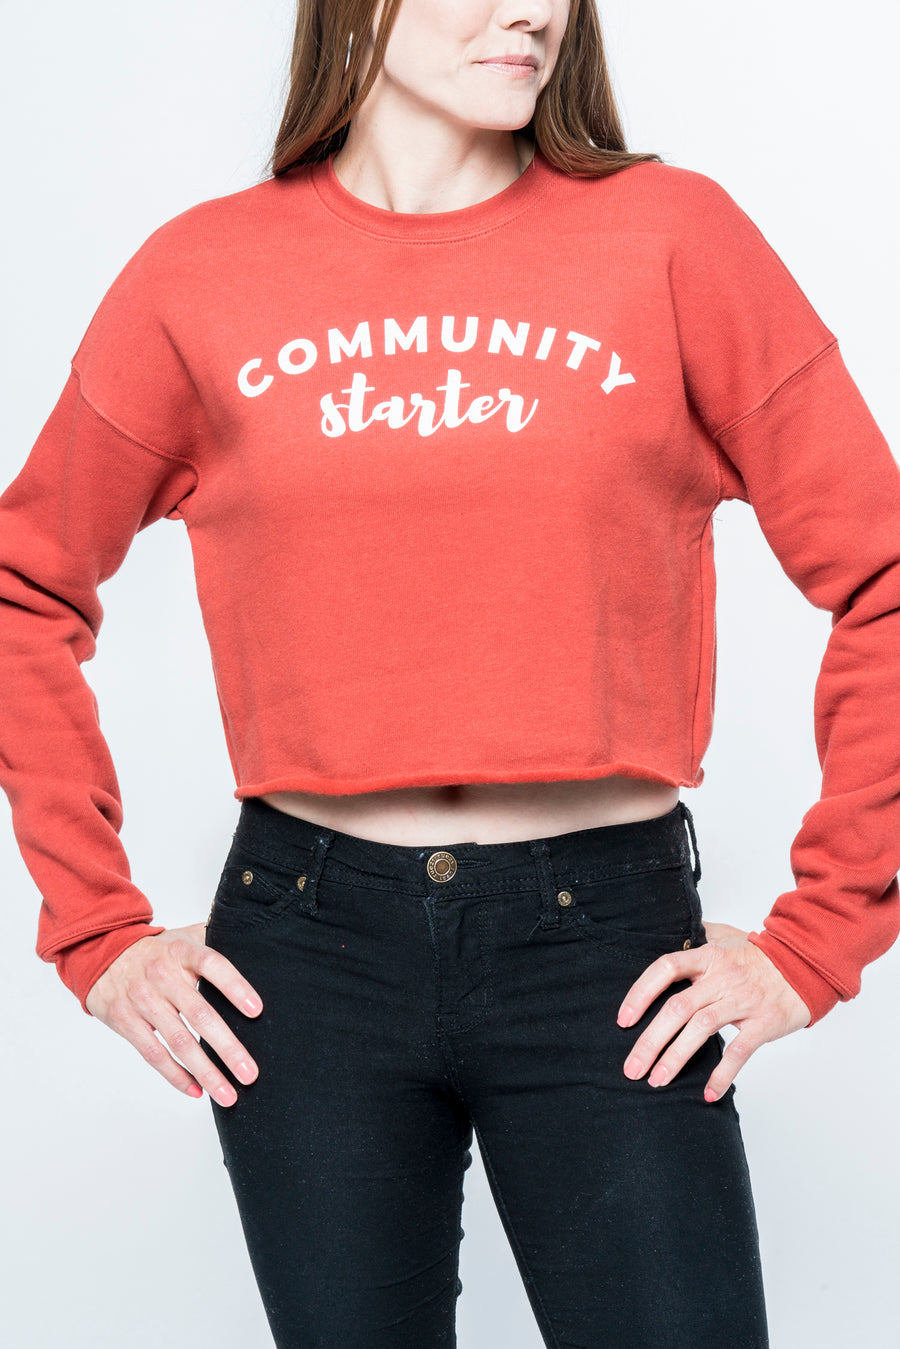 Community Starter Cropped Sweatshirt